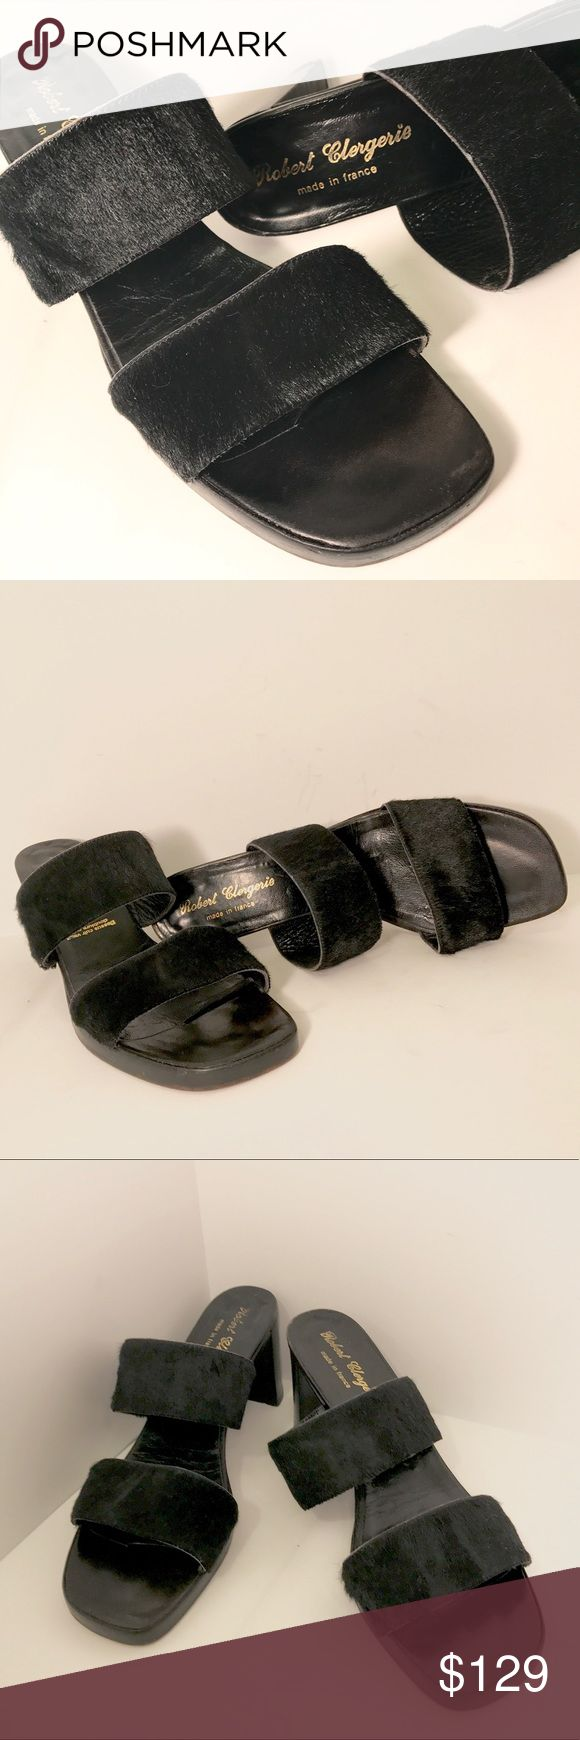 """Robert Clergerie black open toe sandals size 8 Robert Clergerie black pony hair open toe mule sandals. Slip on construction. Calfskin leather lining. Squared toe line. Chunky heel approx 2.5"""" Made in France. Size 8 Robert Clergerie Shoes Sandals"""